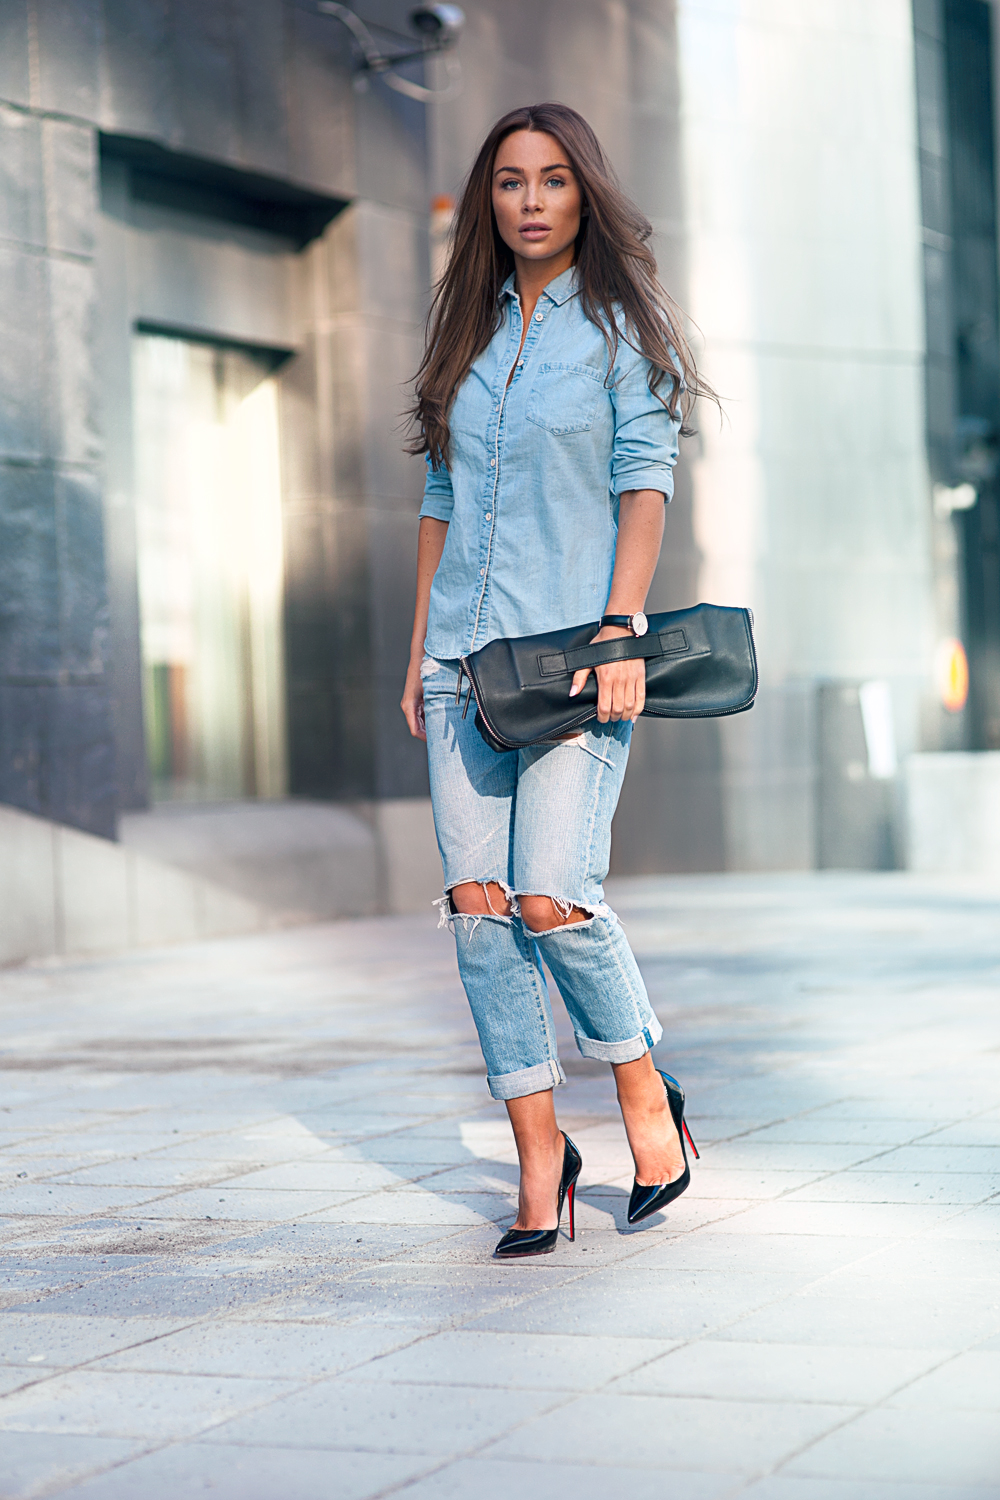 dfcda34e462 Johanna Olsson is wearing a denim shirt from Lindex and the ripped jeans  are from AG